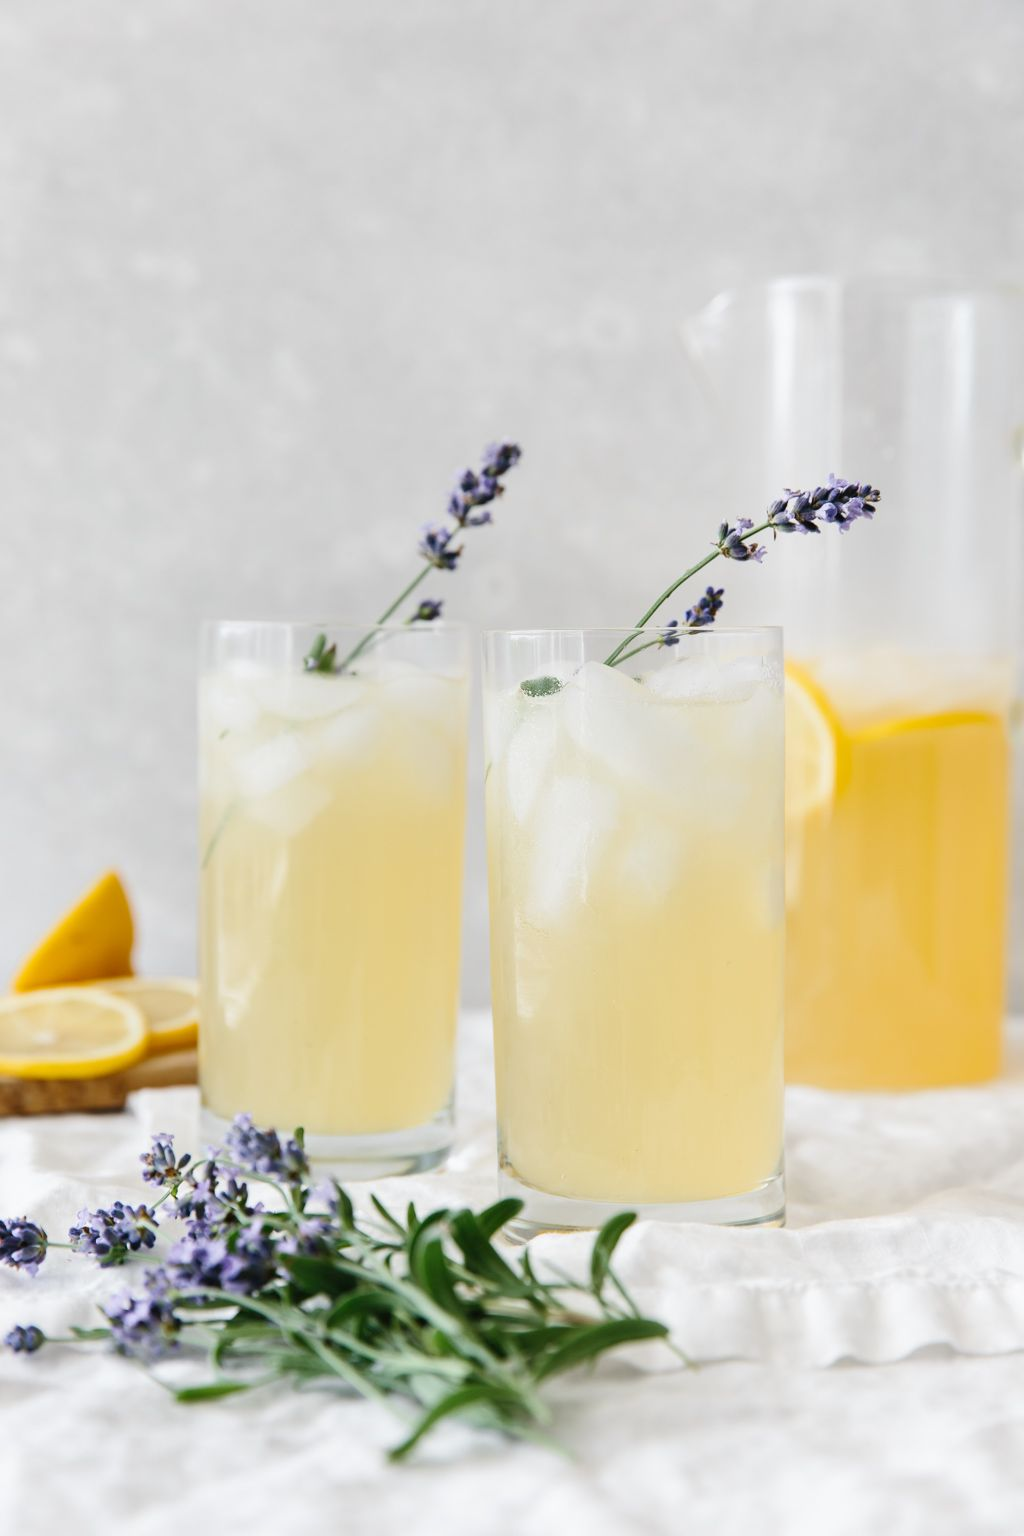 Lavender Lemonade Is A Refreshing Spin On Your Classic Lemonade Recipe Infused With A Lavender Honey Lemonade Recipes Classic Lemonade Recipe Lavender Lemonade